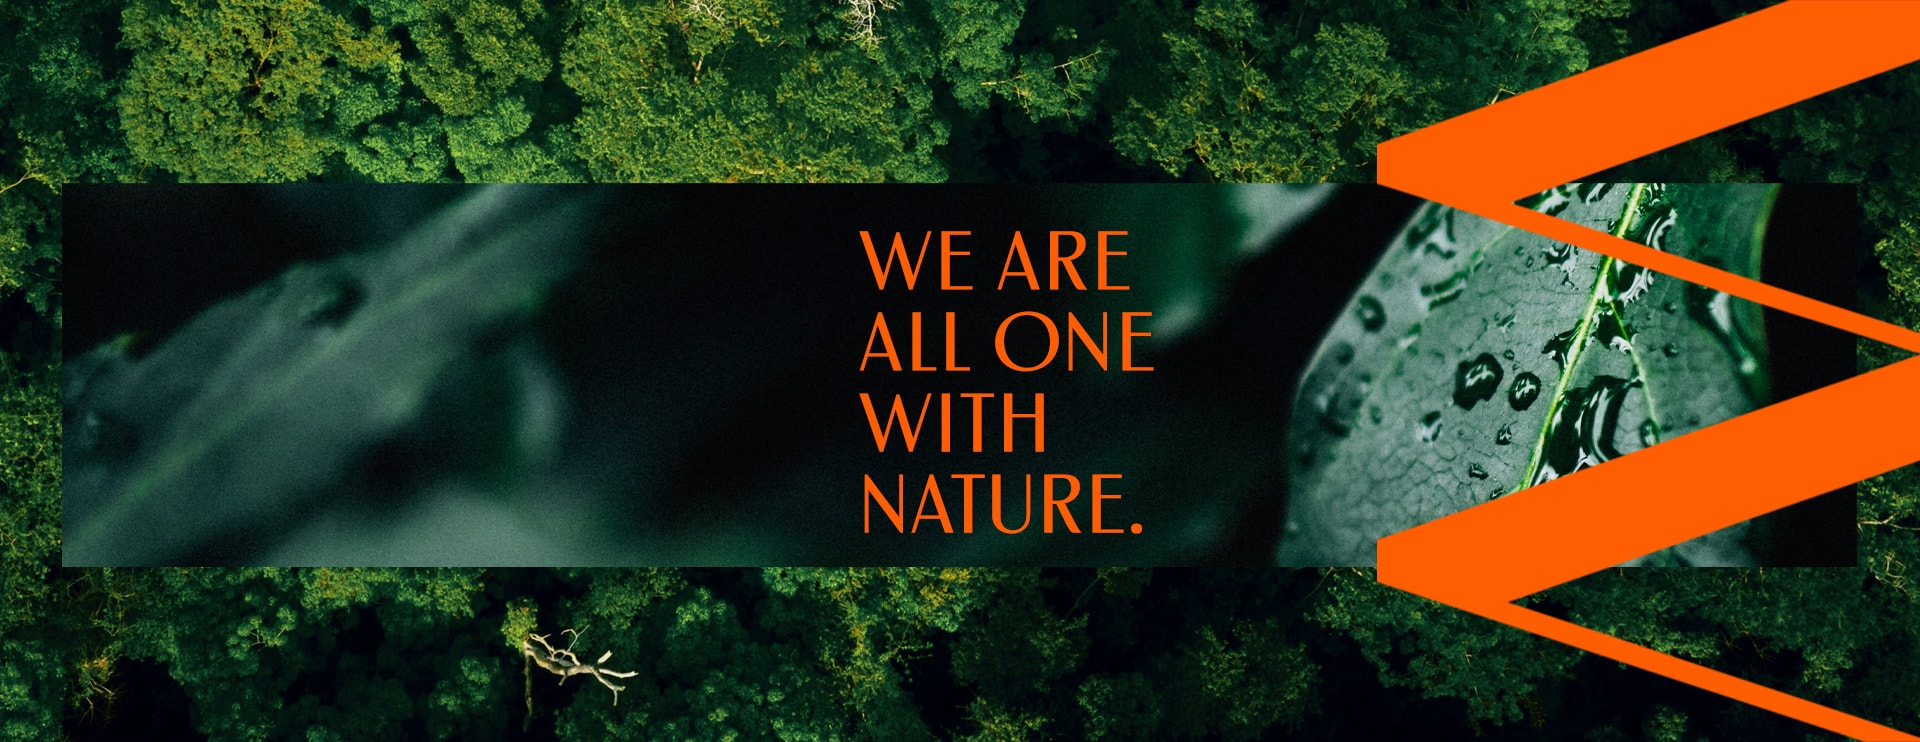 natura ekos earth day - we are one all with nature